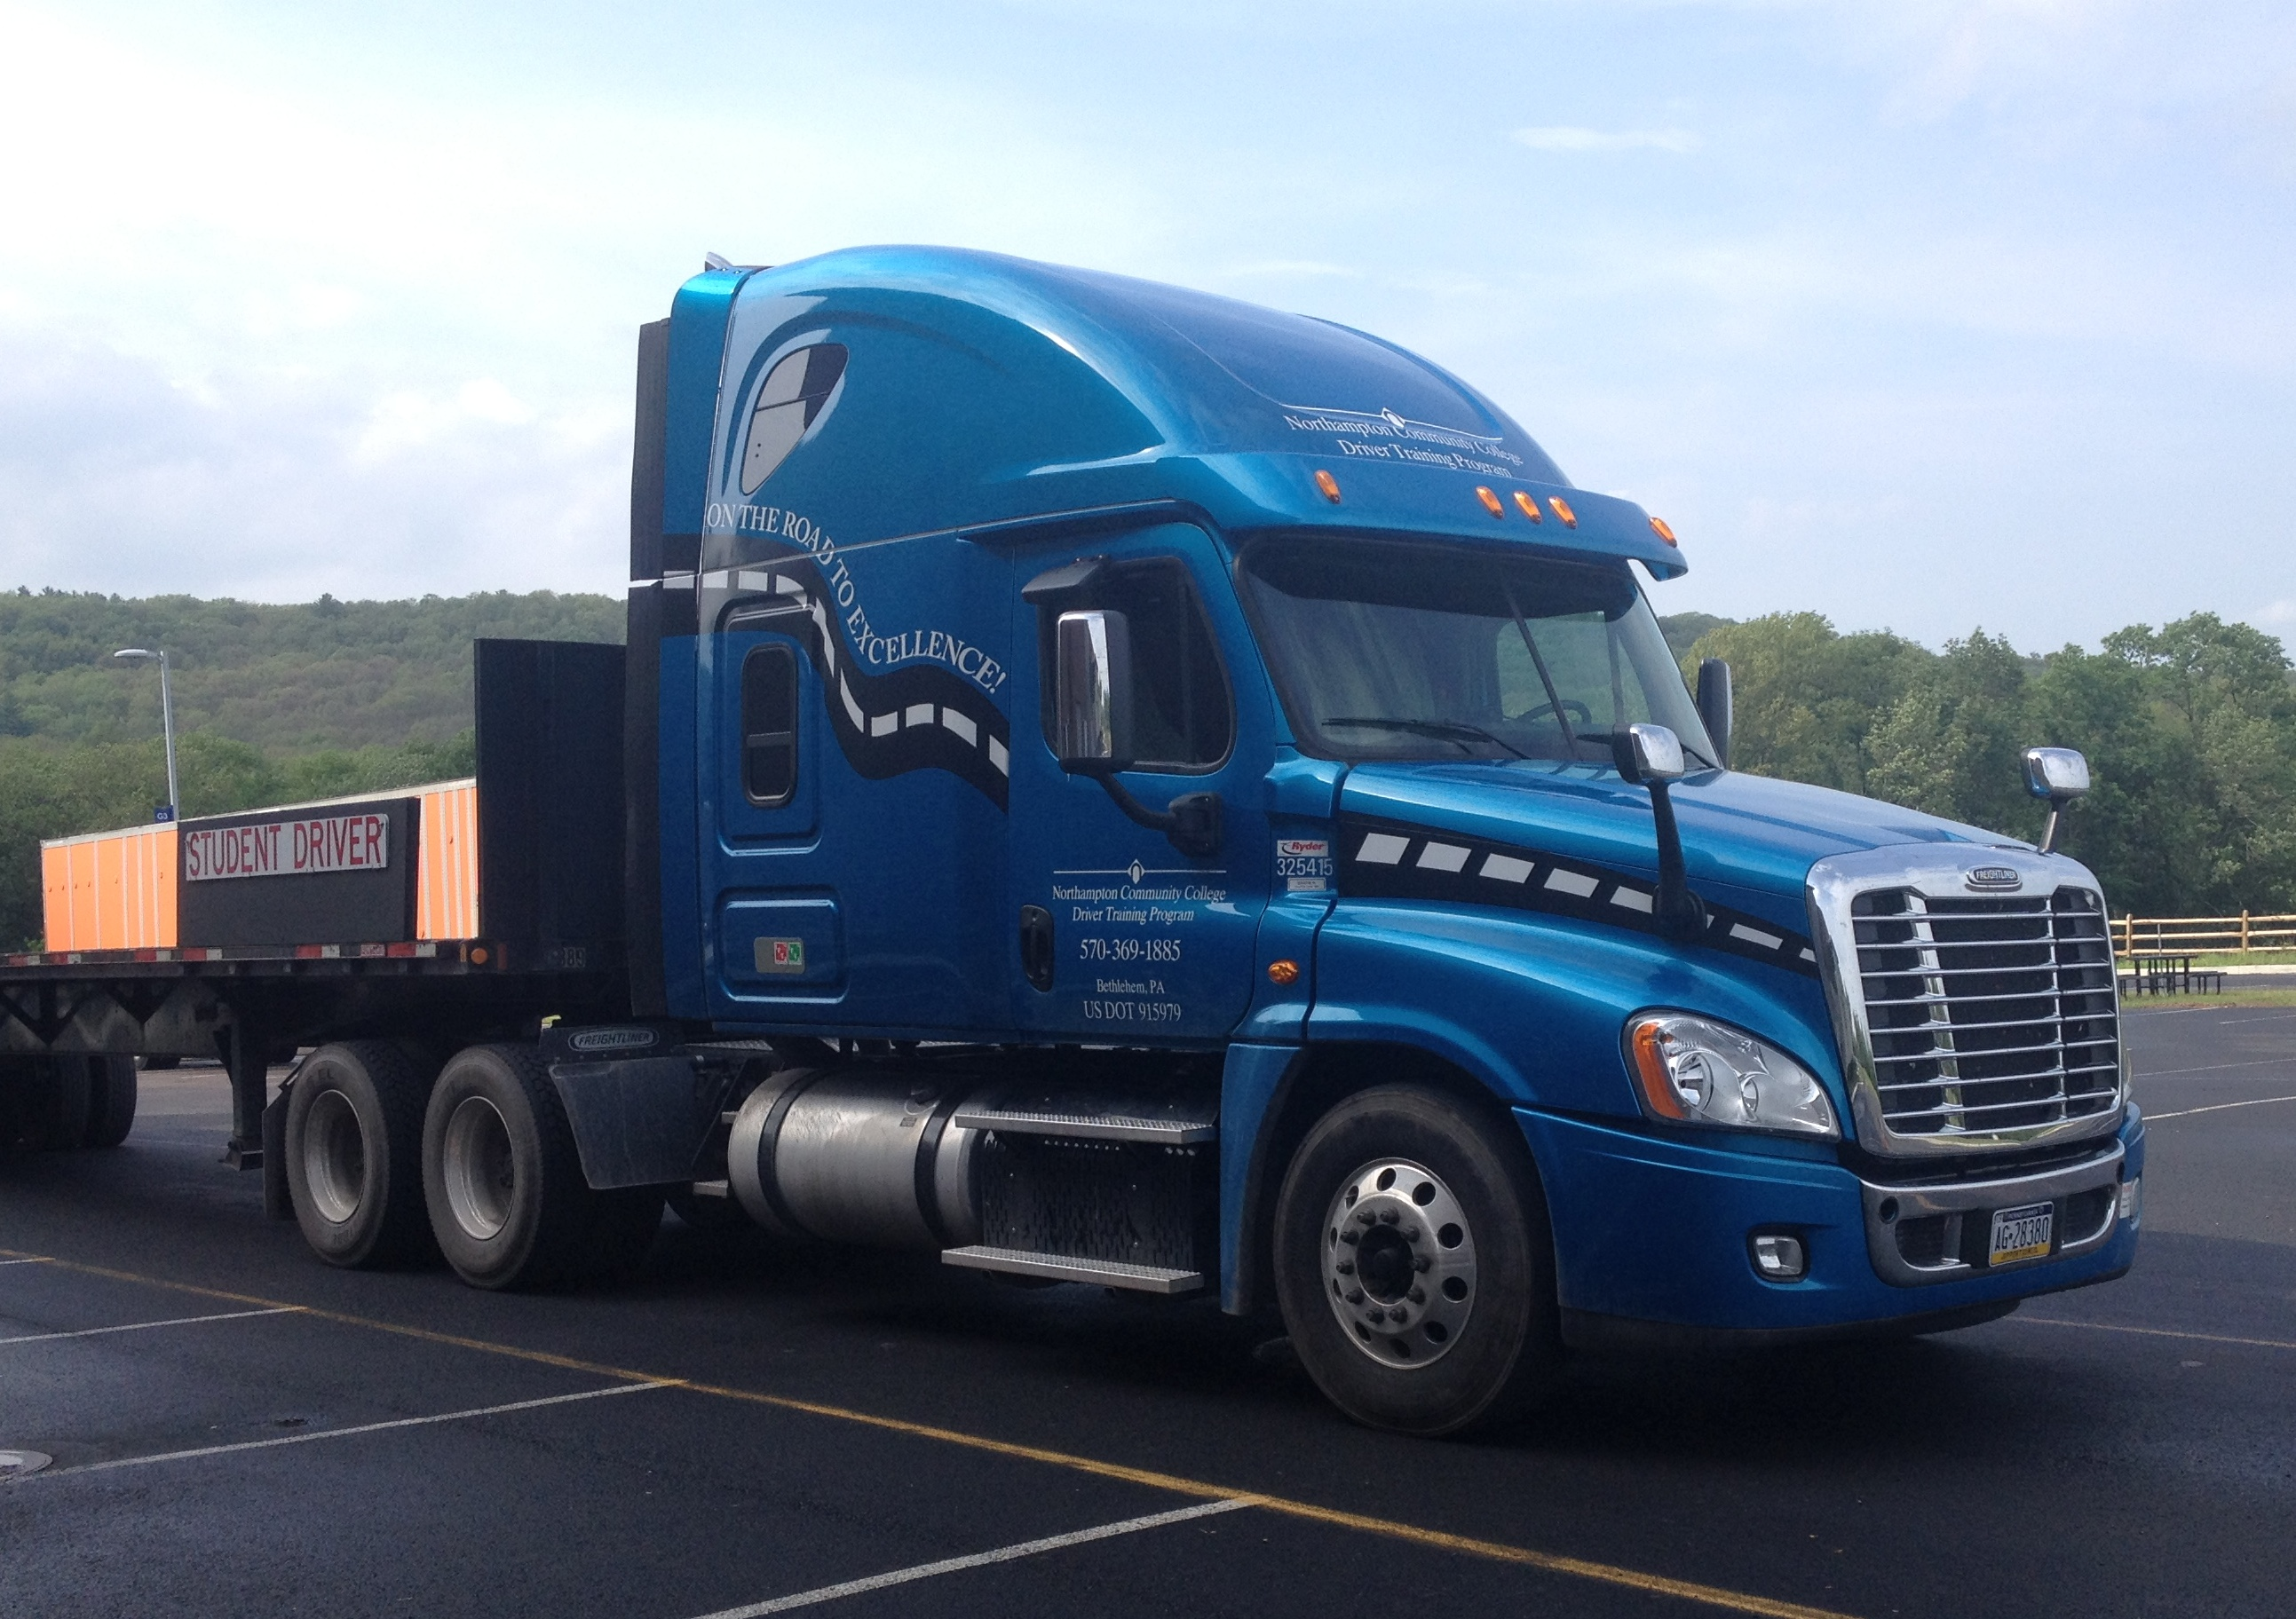 Truck driving programs serve a crucial need in Lehigh Valley